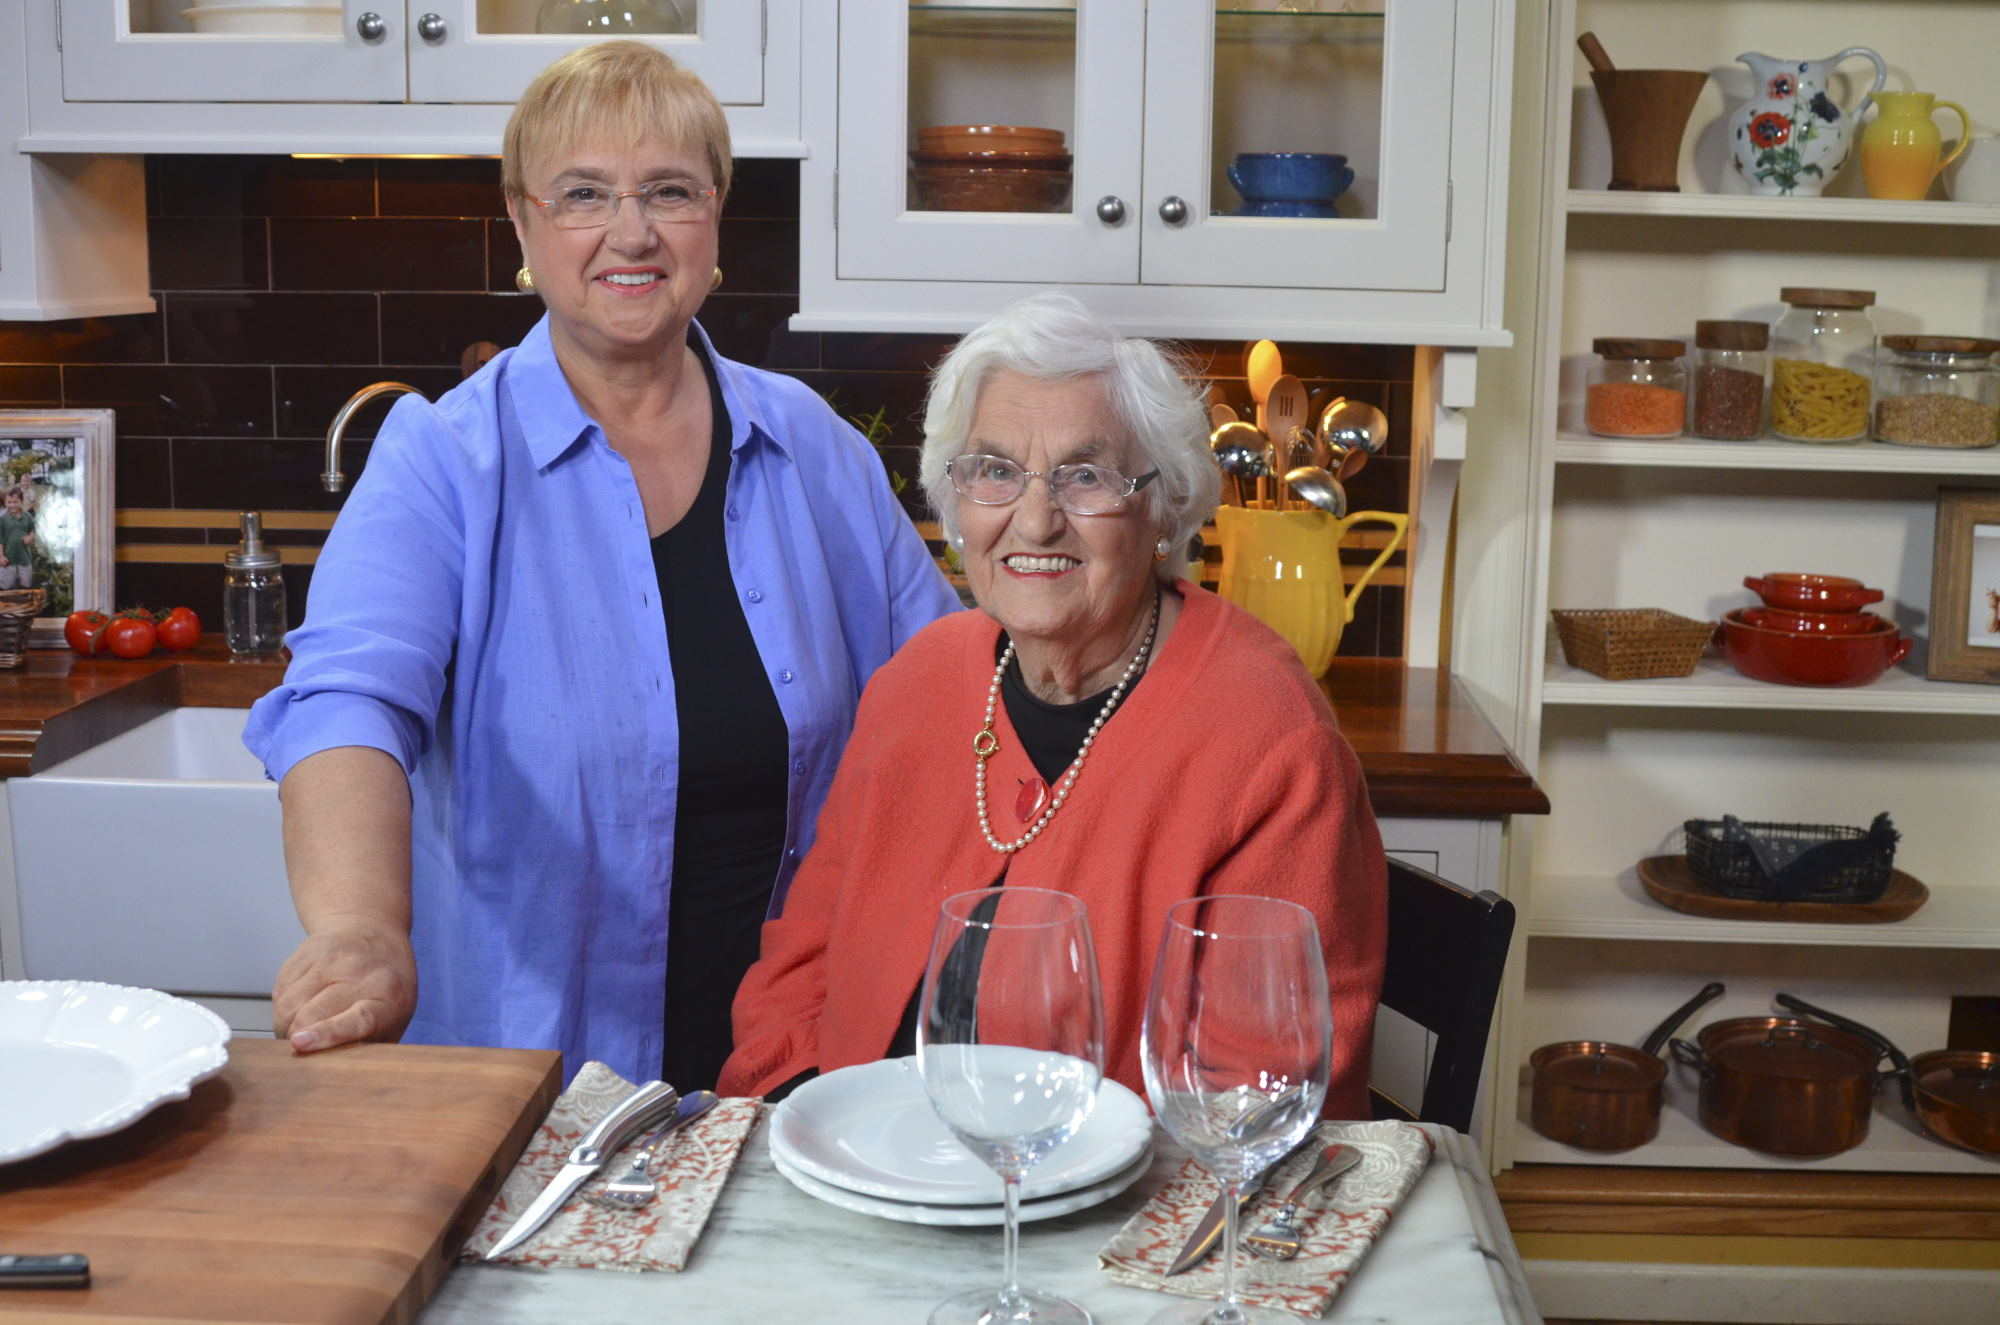 Chef Lidia Bastianich: Let's cherish our seniors this holiday season -- the kitchen's the perfect place to do that